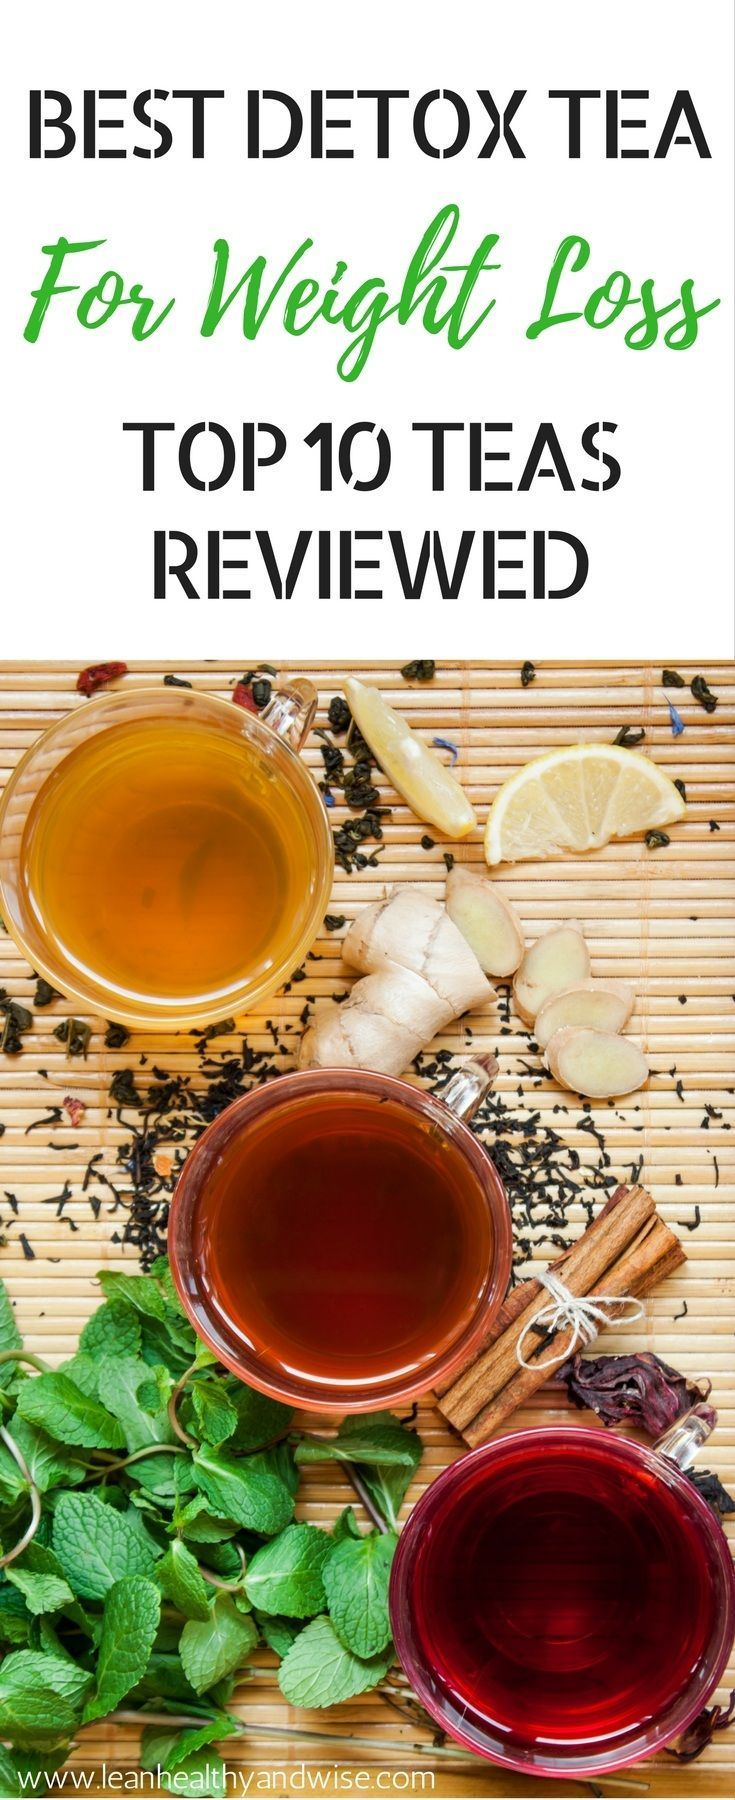 Detox teas are known to gently cleanse your body, improve digestion and help to burn fat. Find out which detox tea is best for weight loss. via @leanhealthywise